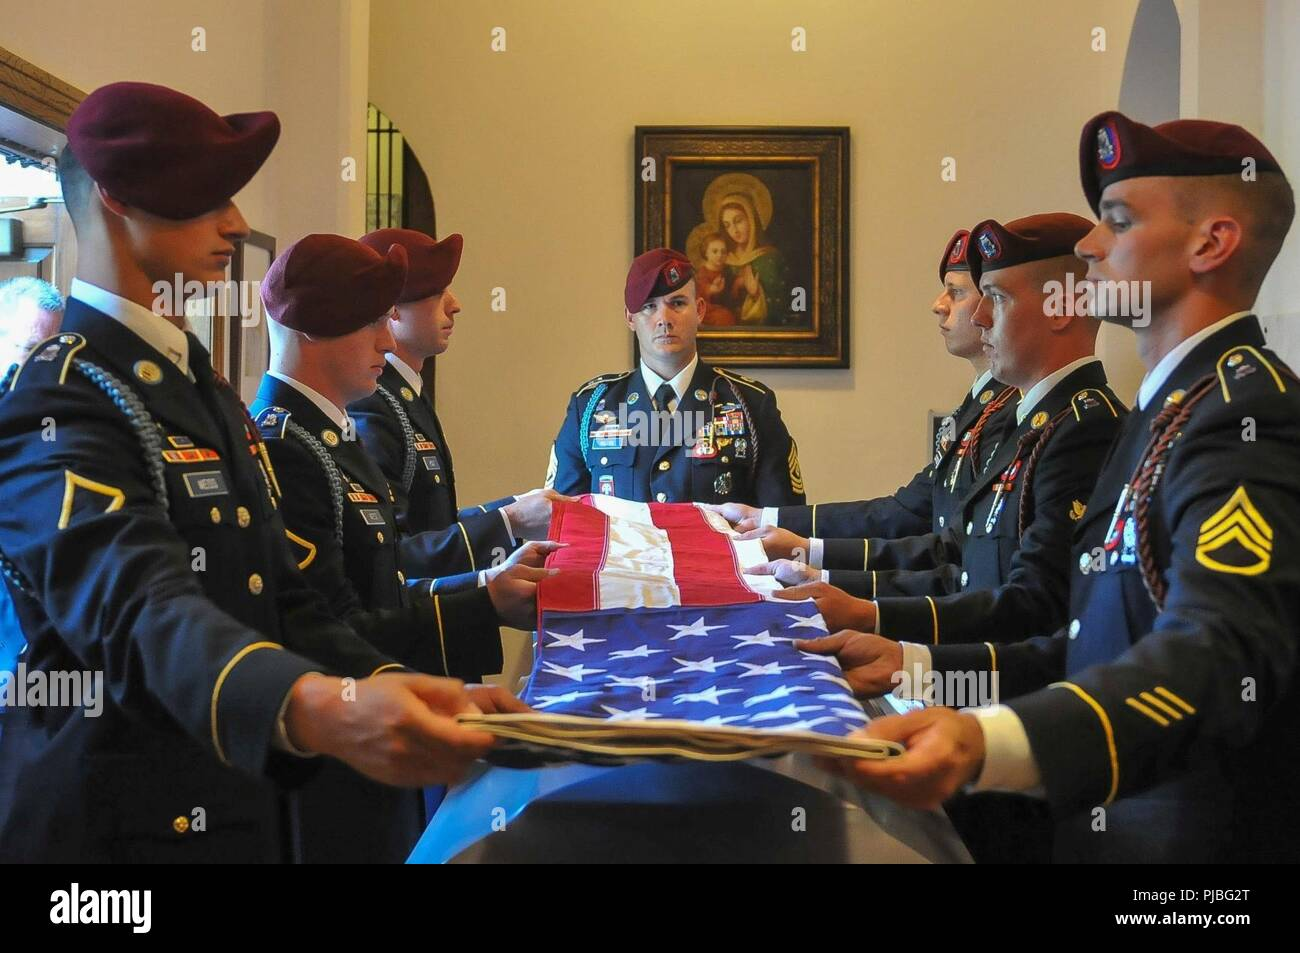 The flag of the United States is folded over the casket of the late retired 1st Sgt. Harold Eatman by paratroopers of the 2nd Battalion, 505th Parachute Infantry Regiment on July 11, 2018 at the Cathedral of Saint Patrick in Charlotte, North Carolina as 1st Sgt. James Miller of Company B, 2-505 PIR, center, looks on.  Eatman was a member of the 505th PIR and conducted four World War II combat jumps into Sicily, Salerno, Normandy and Holland with the regiment.  He died earlier in July at the age of 102. Stock Photo